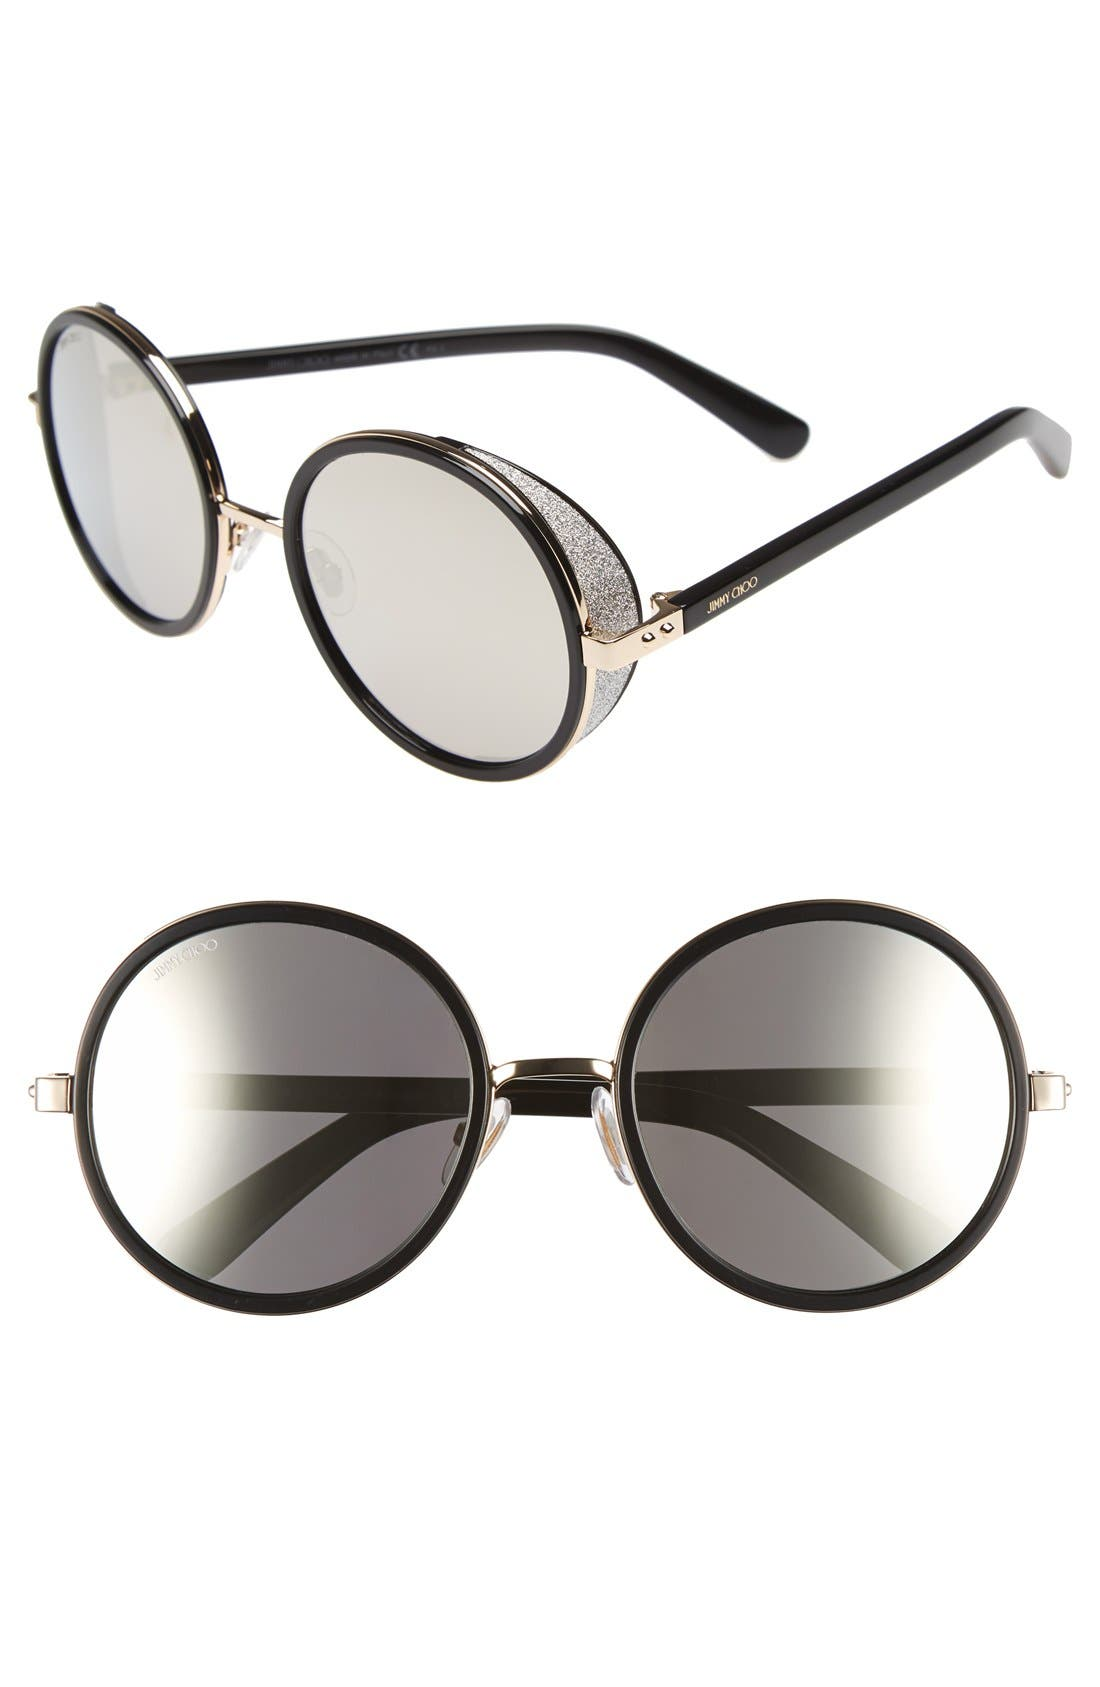 Main Image - Jimmy Choo 'Andies' 54mm Round Sunglasses